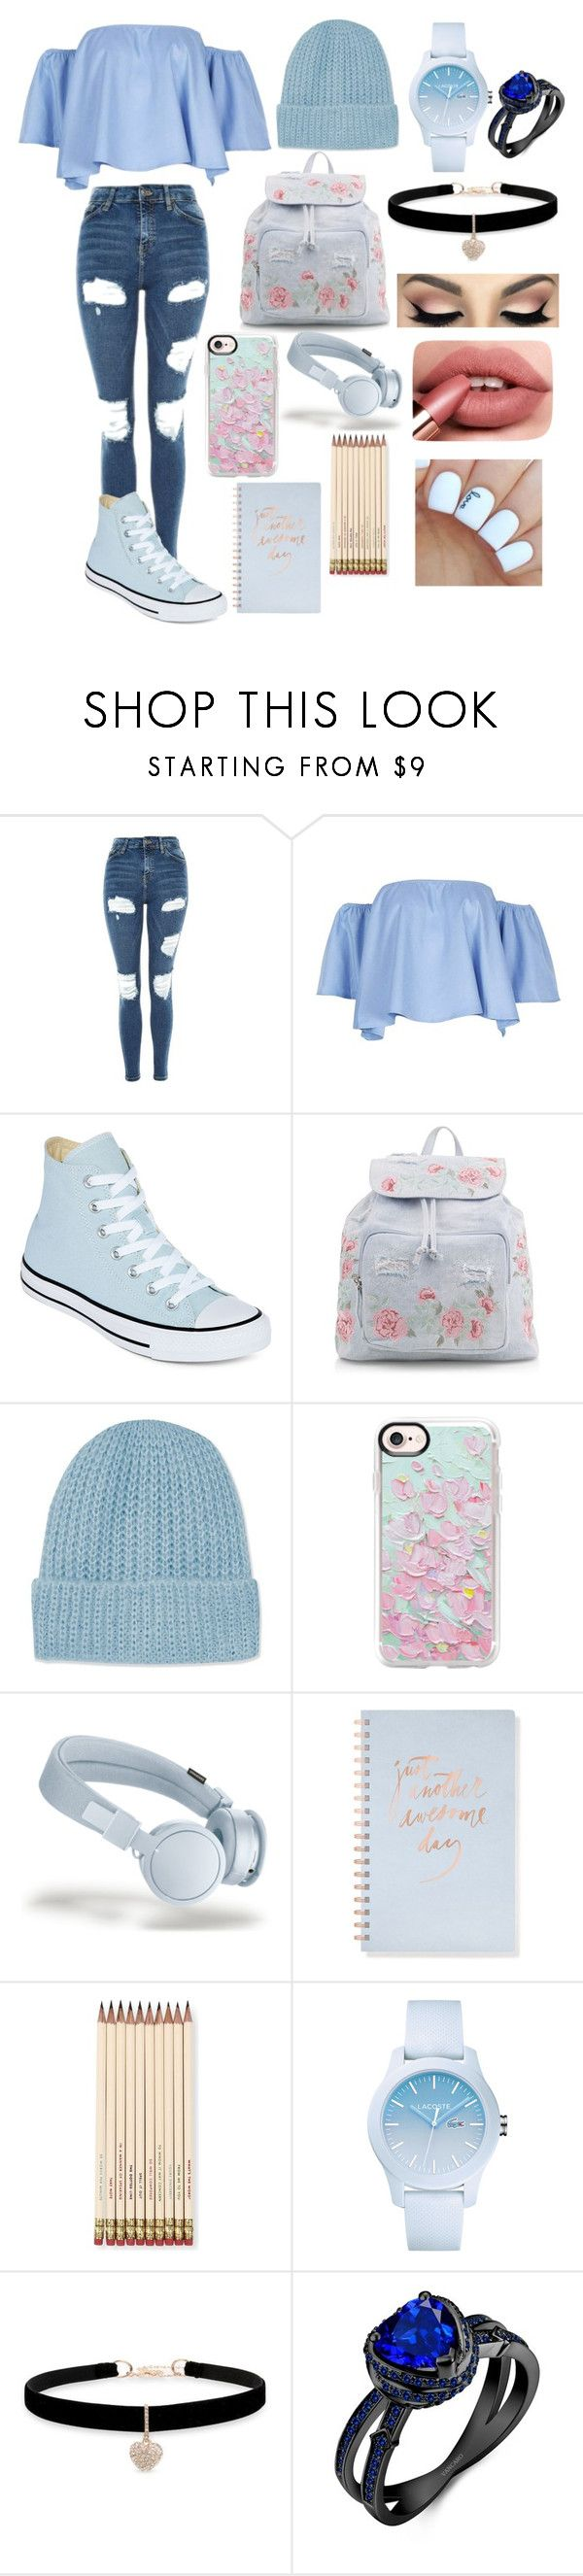 """Wozza"" by aesthetic-fashion on Polyvore featuring Topshop, Converse, New Look, Casetify, Fringe, Kate Spade, Lacoste and Betsey Johnson"